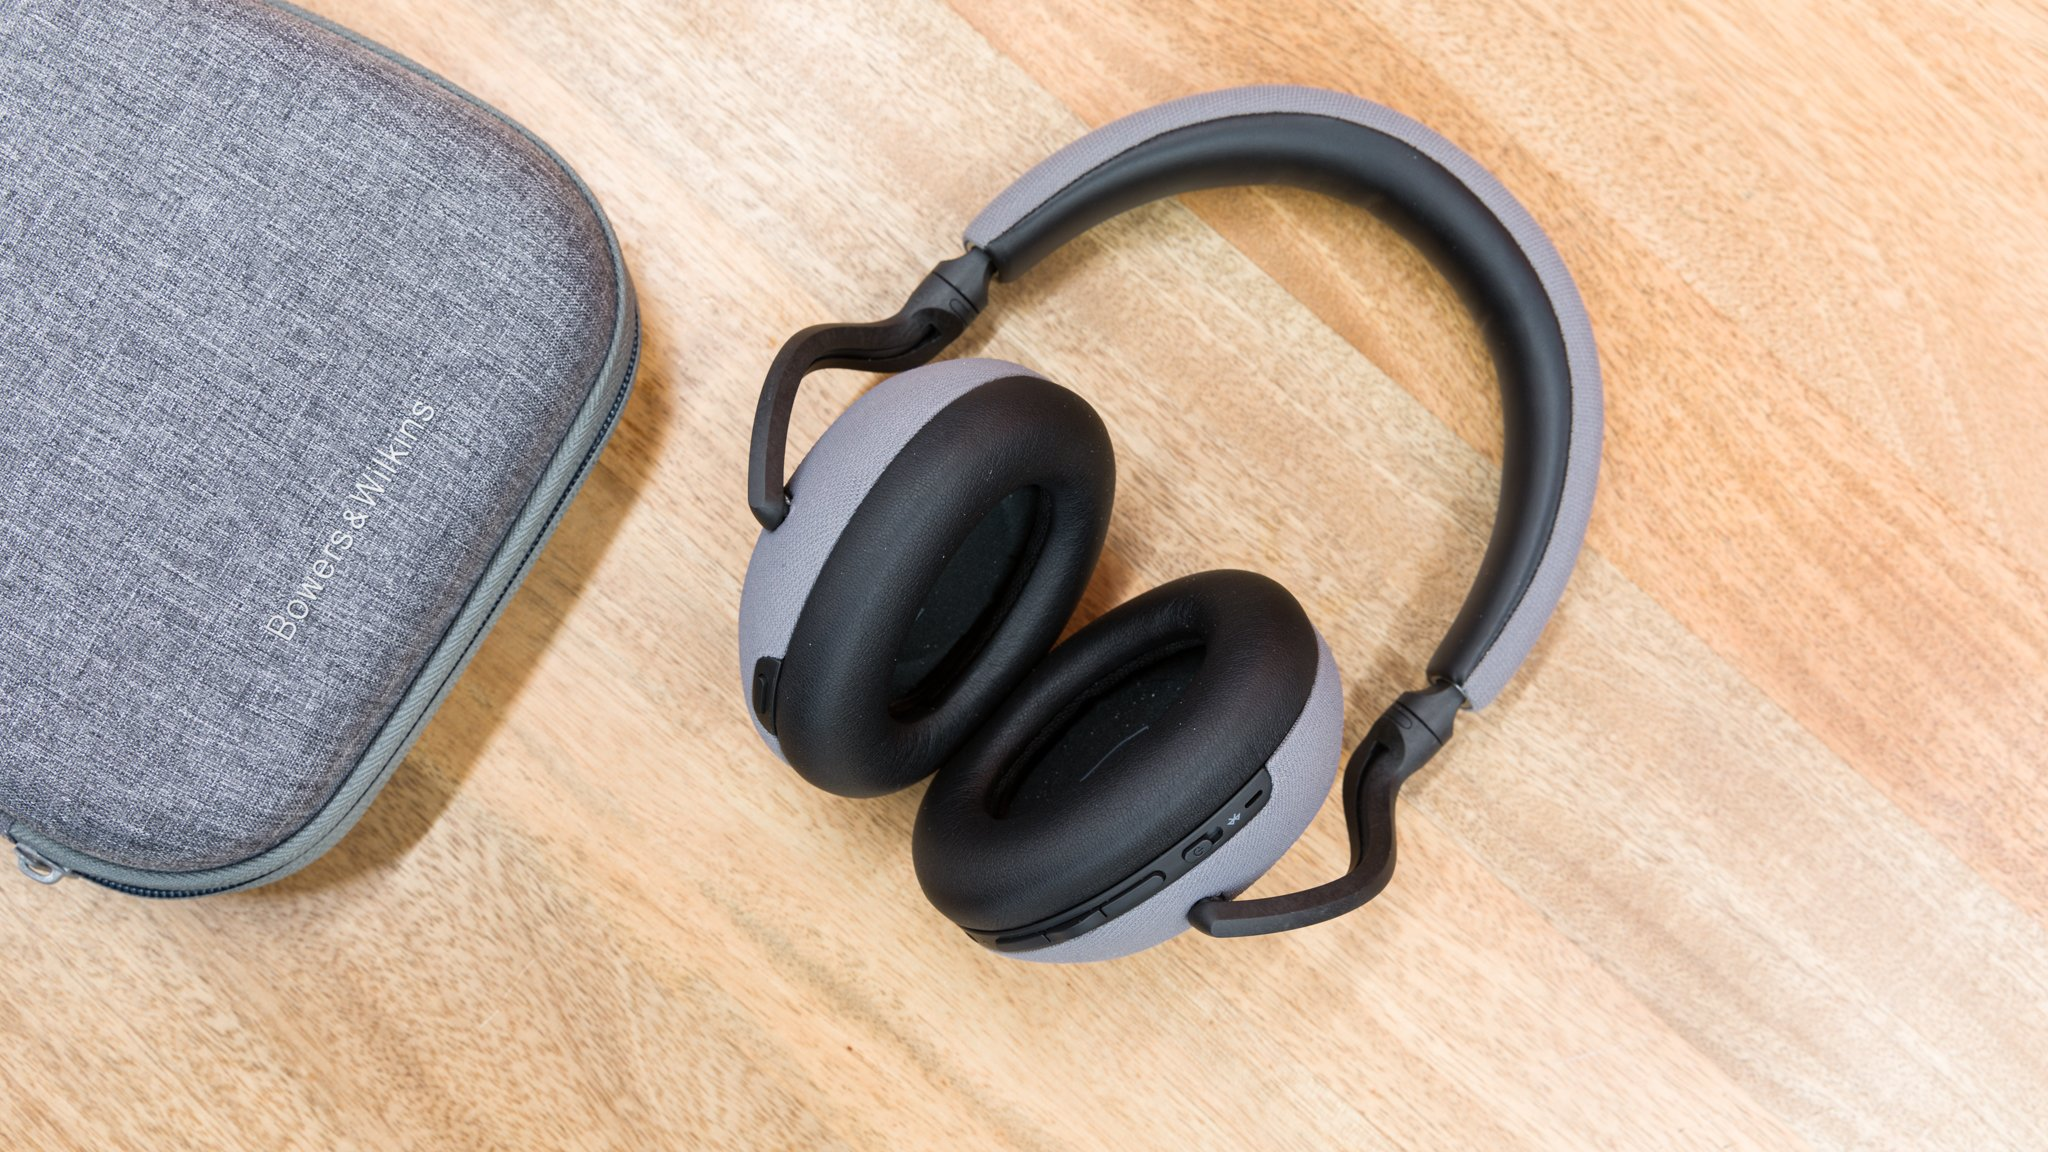 Bowers & Wilkins PX7 review: Better than the Sony WH-1000XM3?